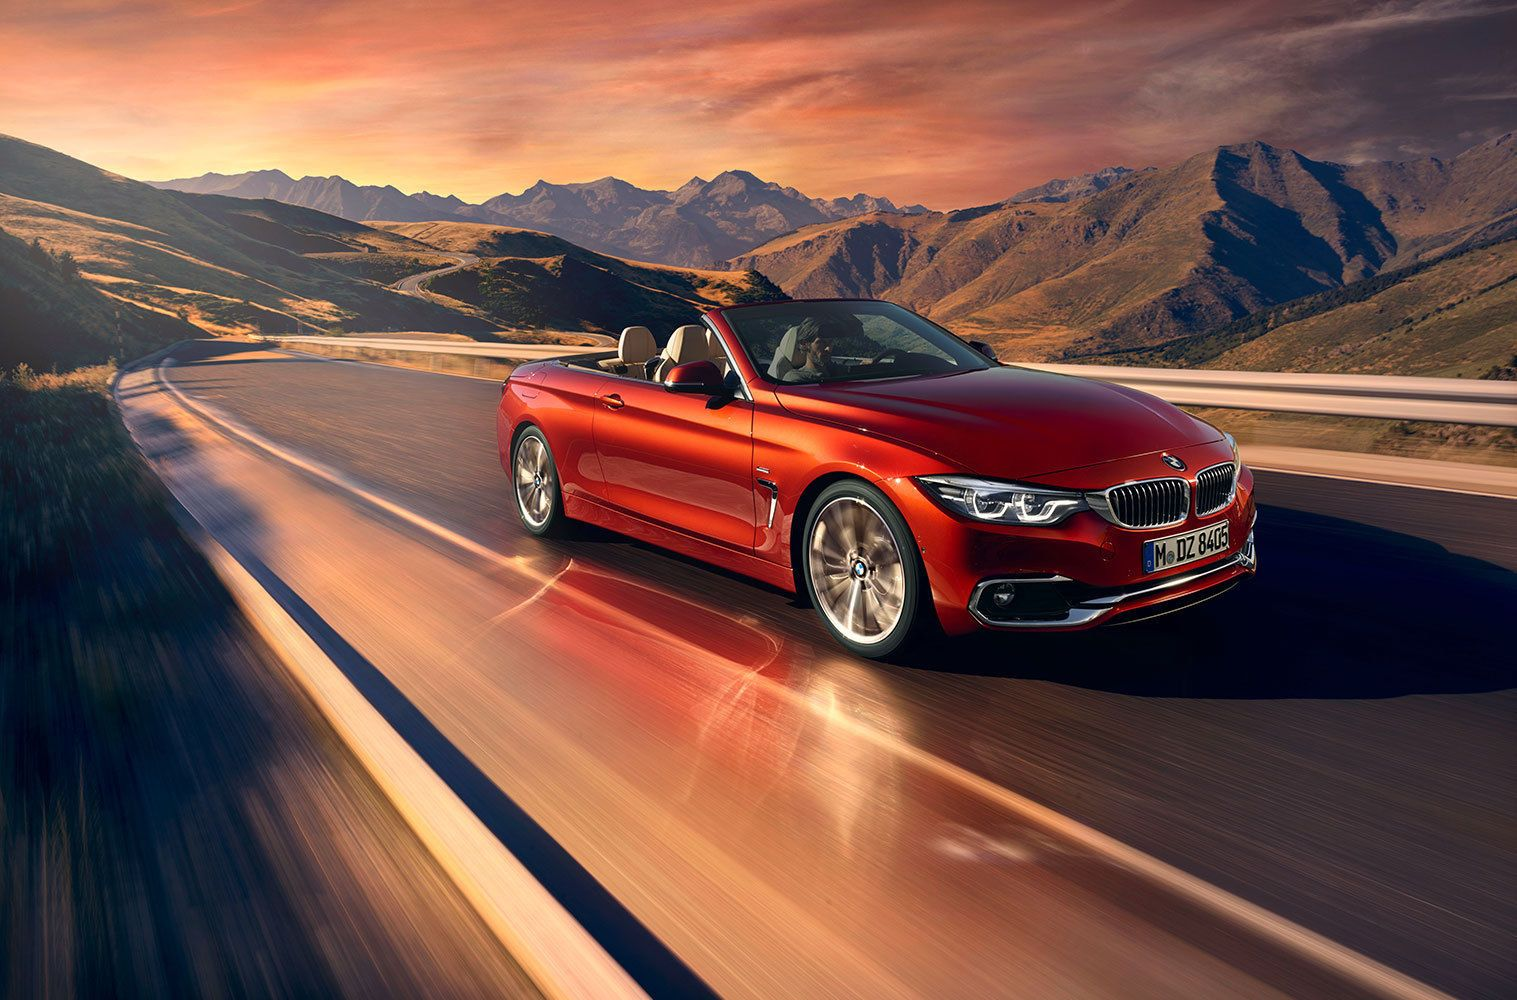 Bmw 4series Campaign Frithjof Ohm Pretzsch Frithjof Ohm